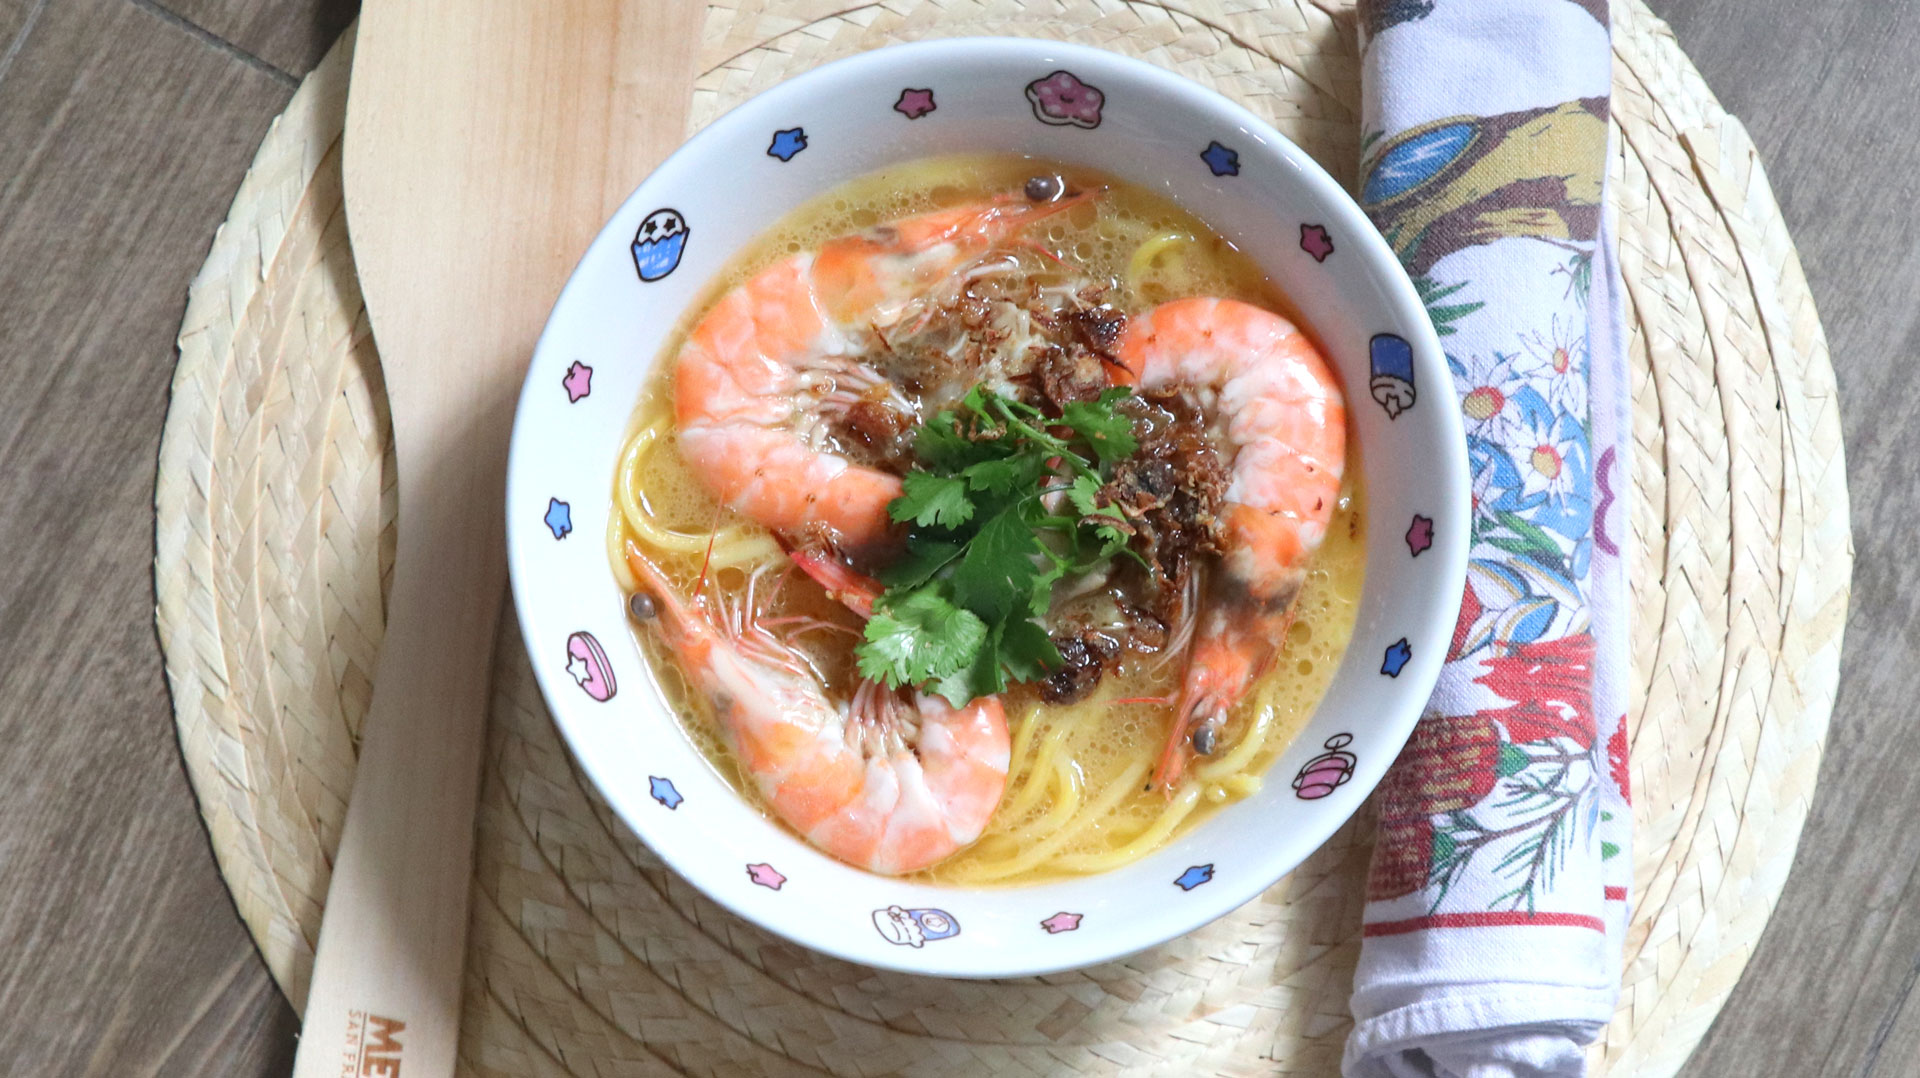 two-bad-chefs-prawn-noodle-dish-04.jpg